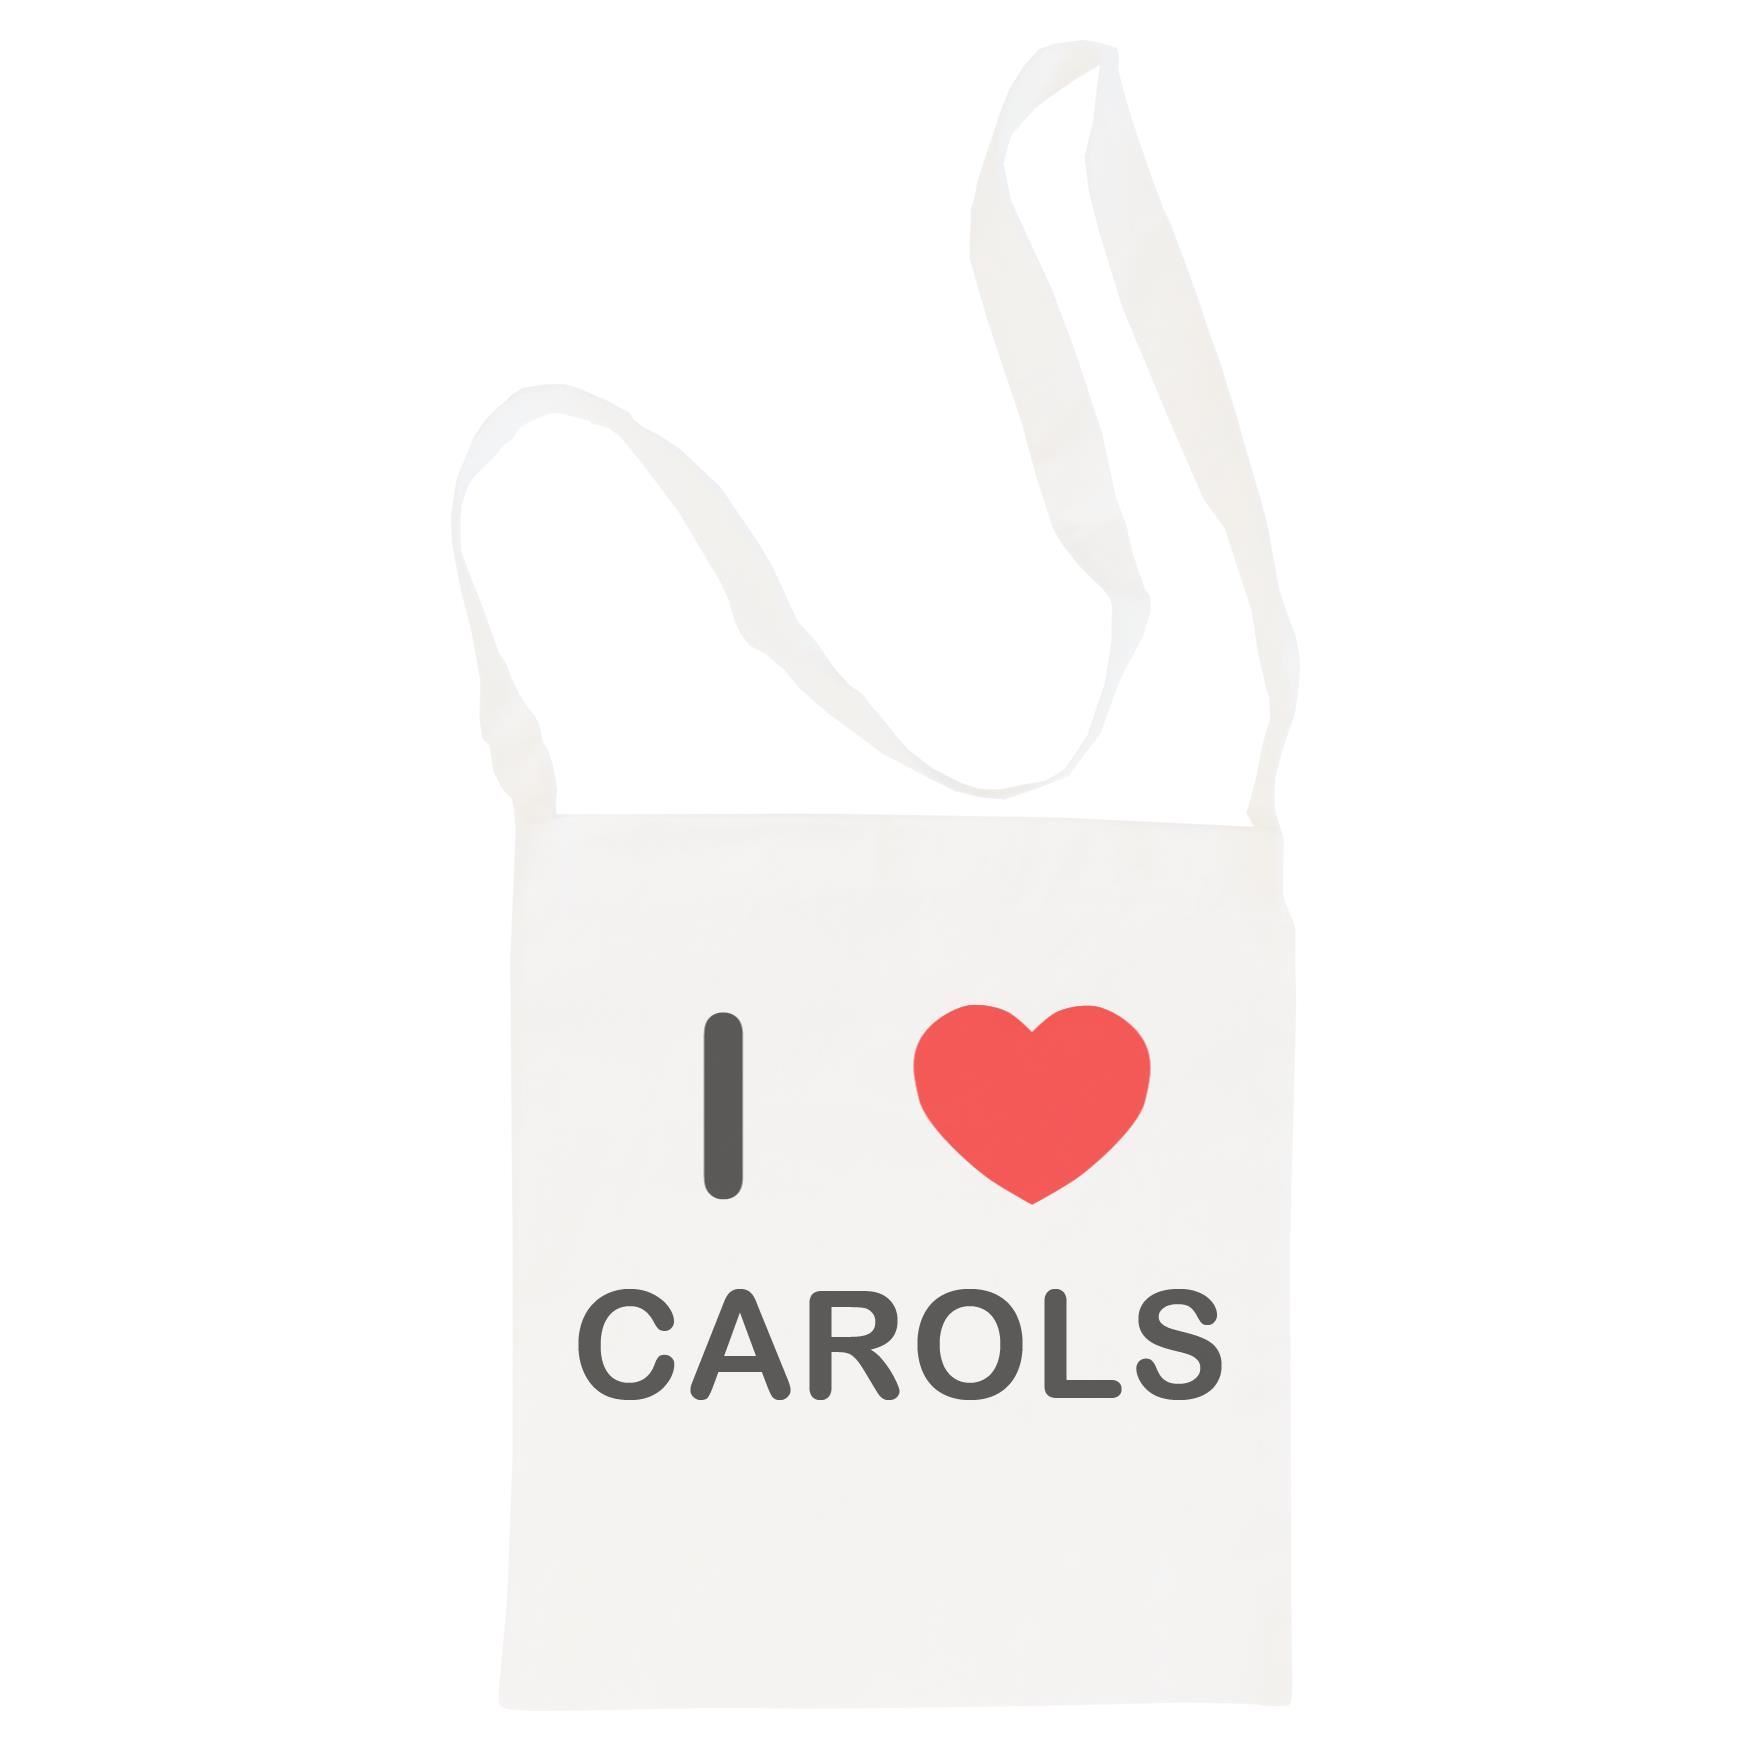 I Love Carols - Cotton Bag | Size choice Tote, Shopper or Sling